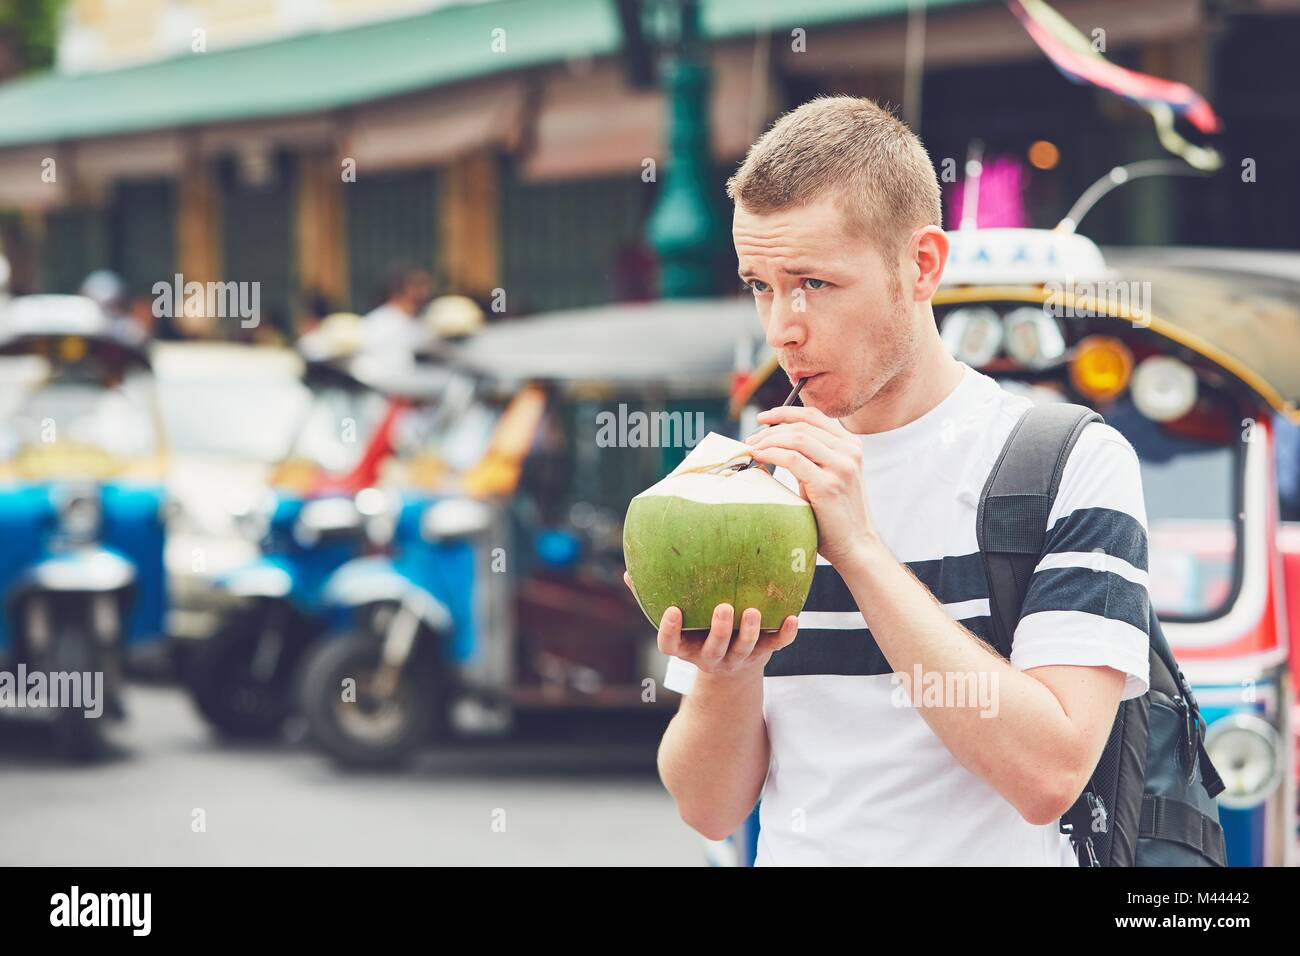 coconut water drink straw stockfotos coconut water drink straw bilder alamy. Black Bedroom Furniture Sets. Home Design Ideas